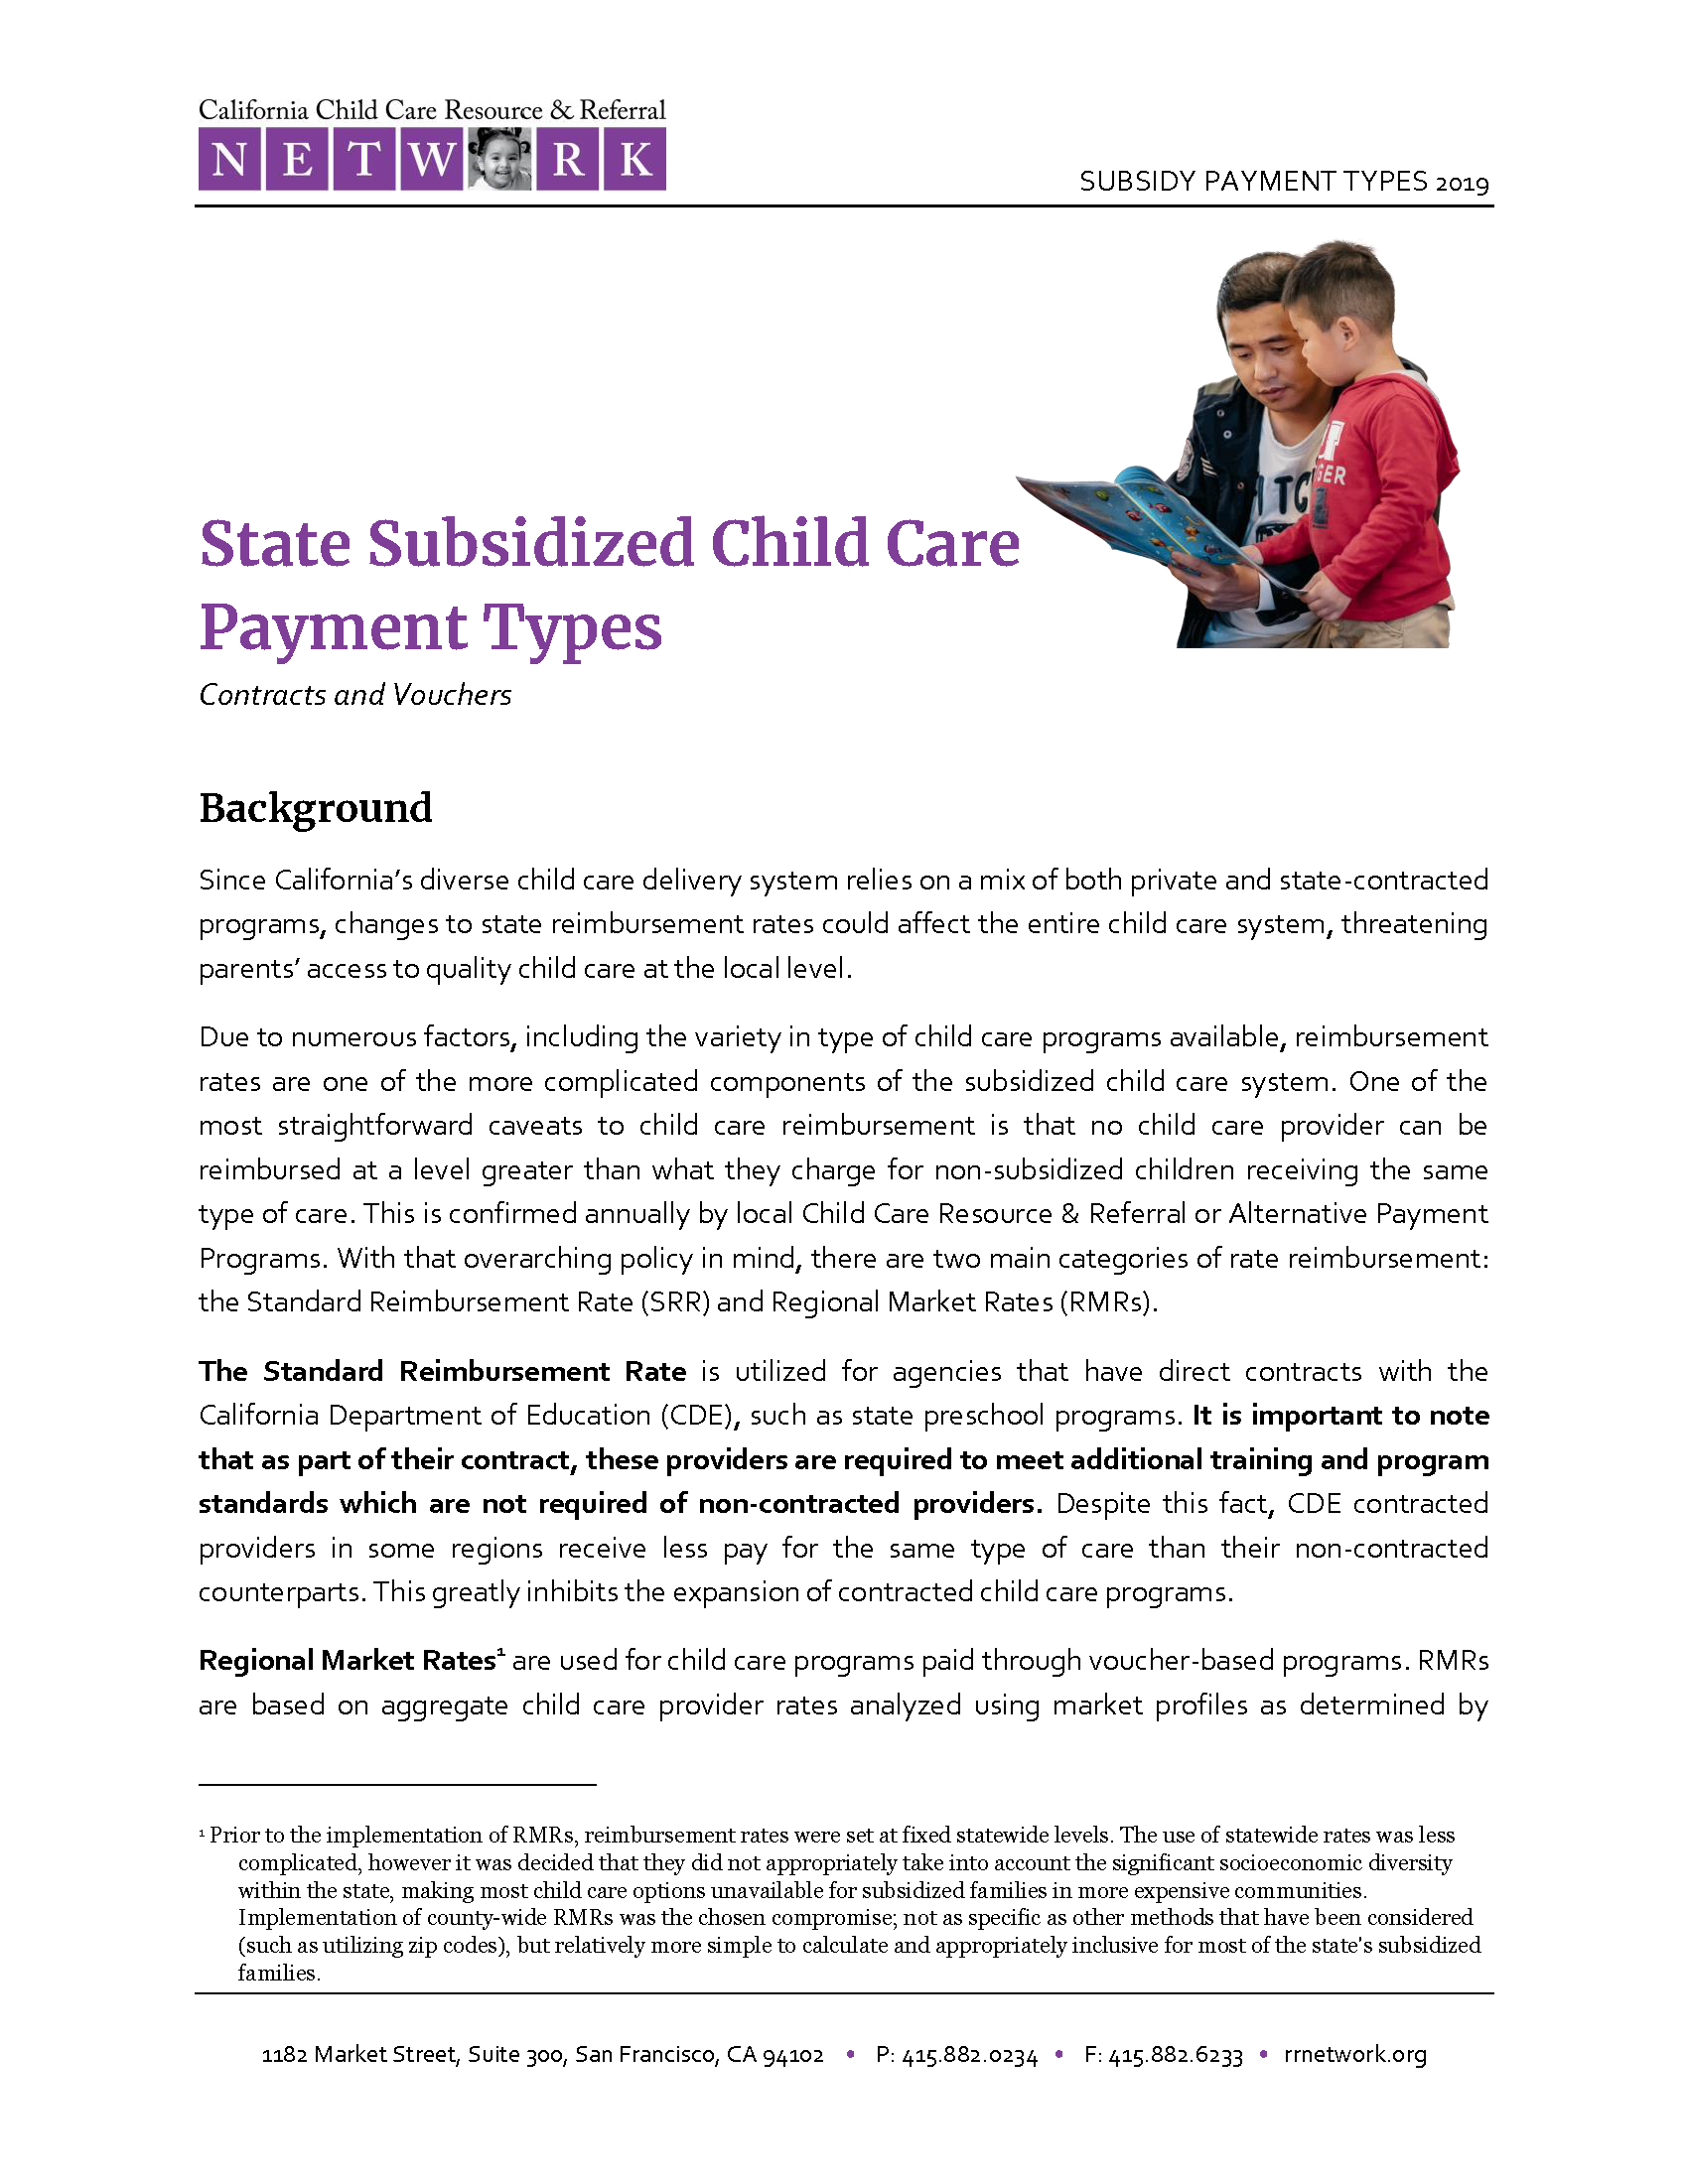 State Subsidized Child are Payment Types